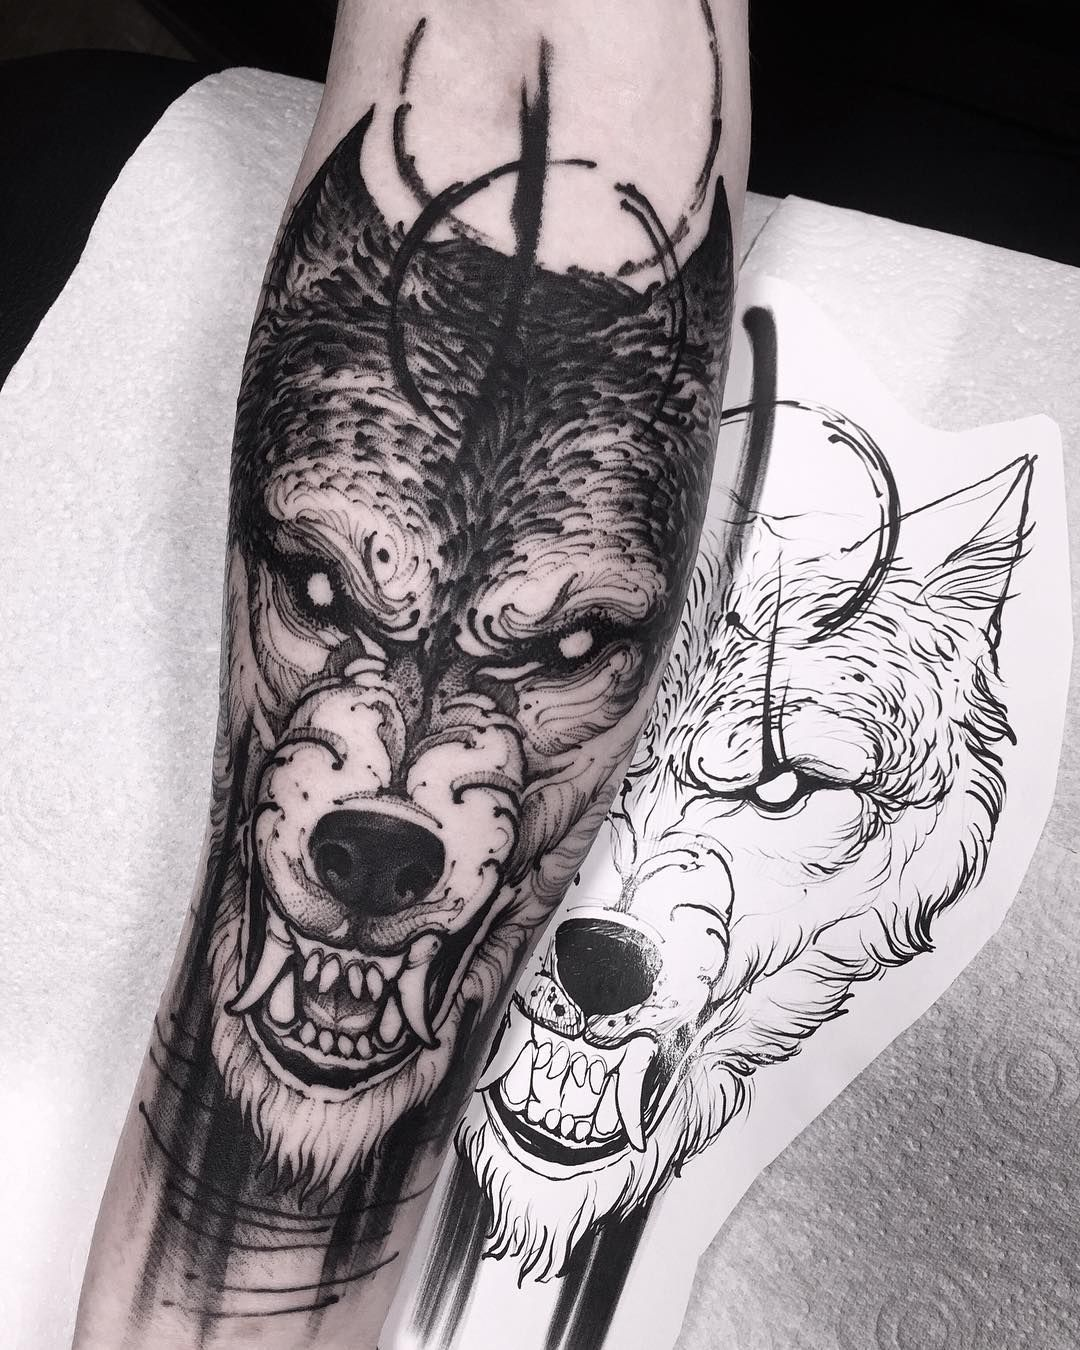 c1b793e1bd099 Discover stunning ideas about wolf head tattoo design. Blackwork another wolf  tattoo halfsleeve by @brunosantostattoo #NeatTattoosIWouldHave